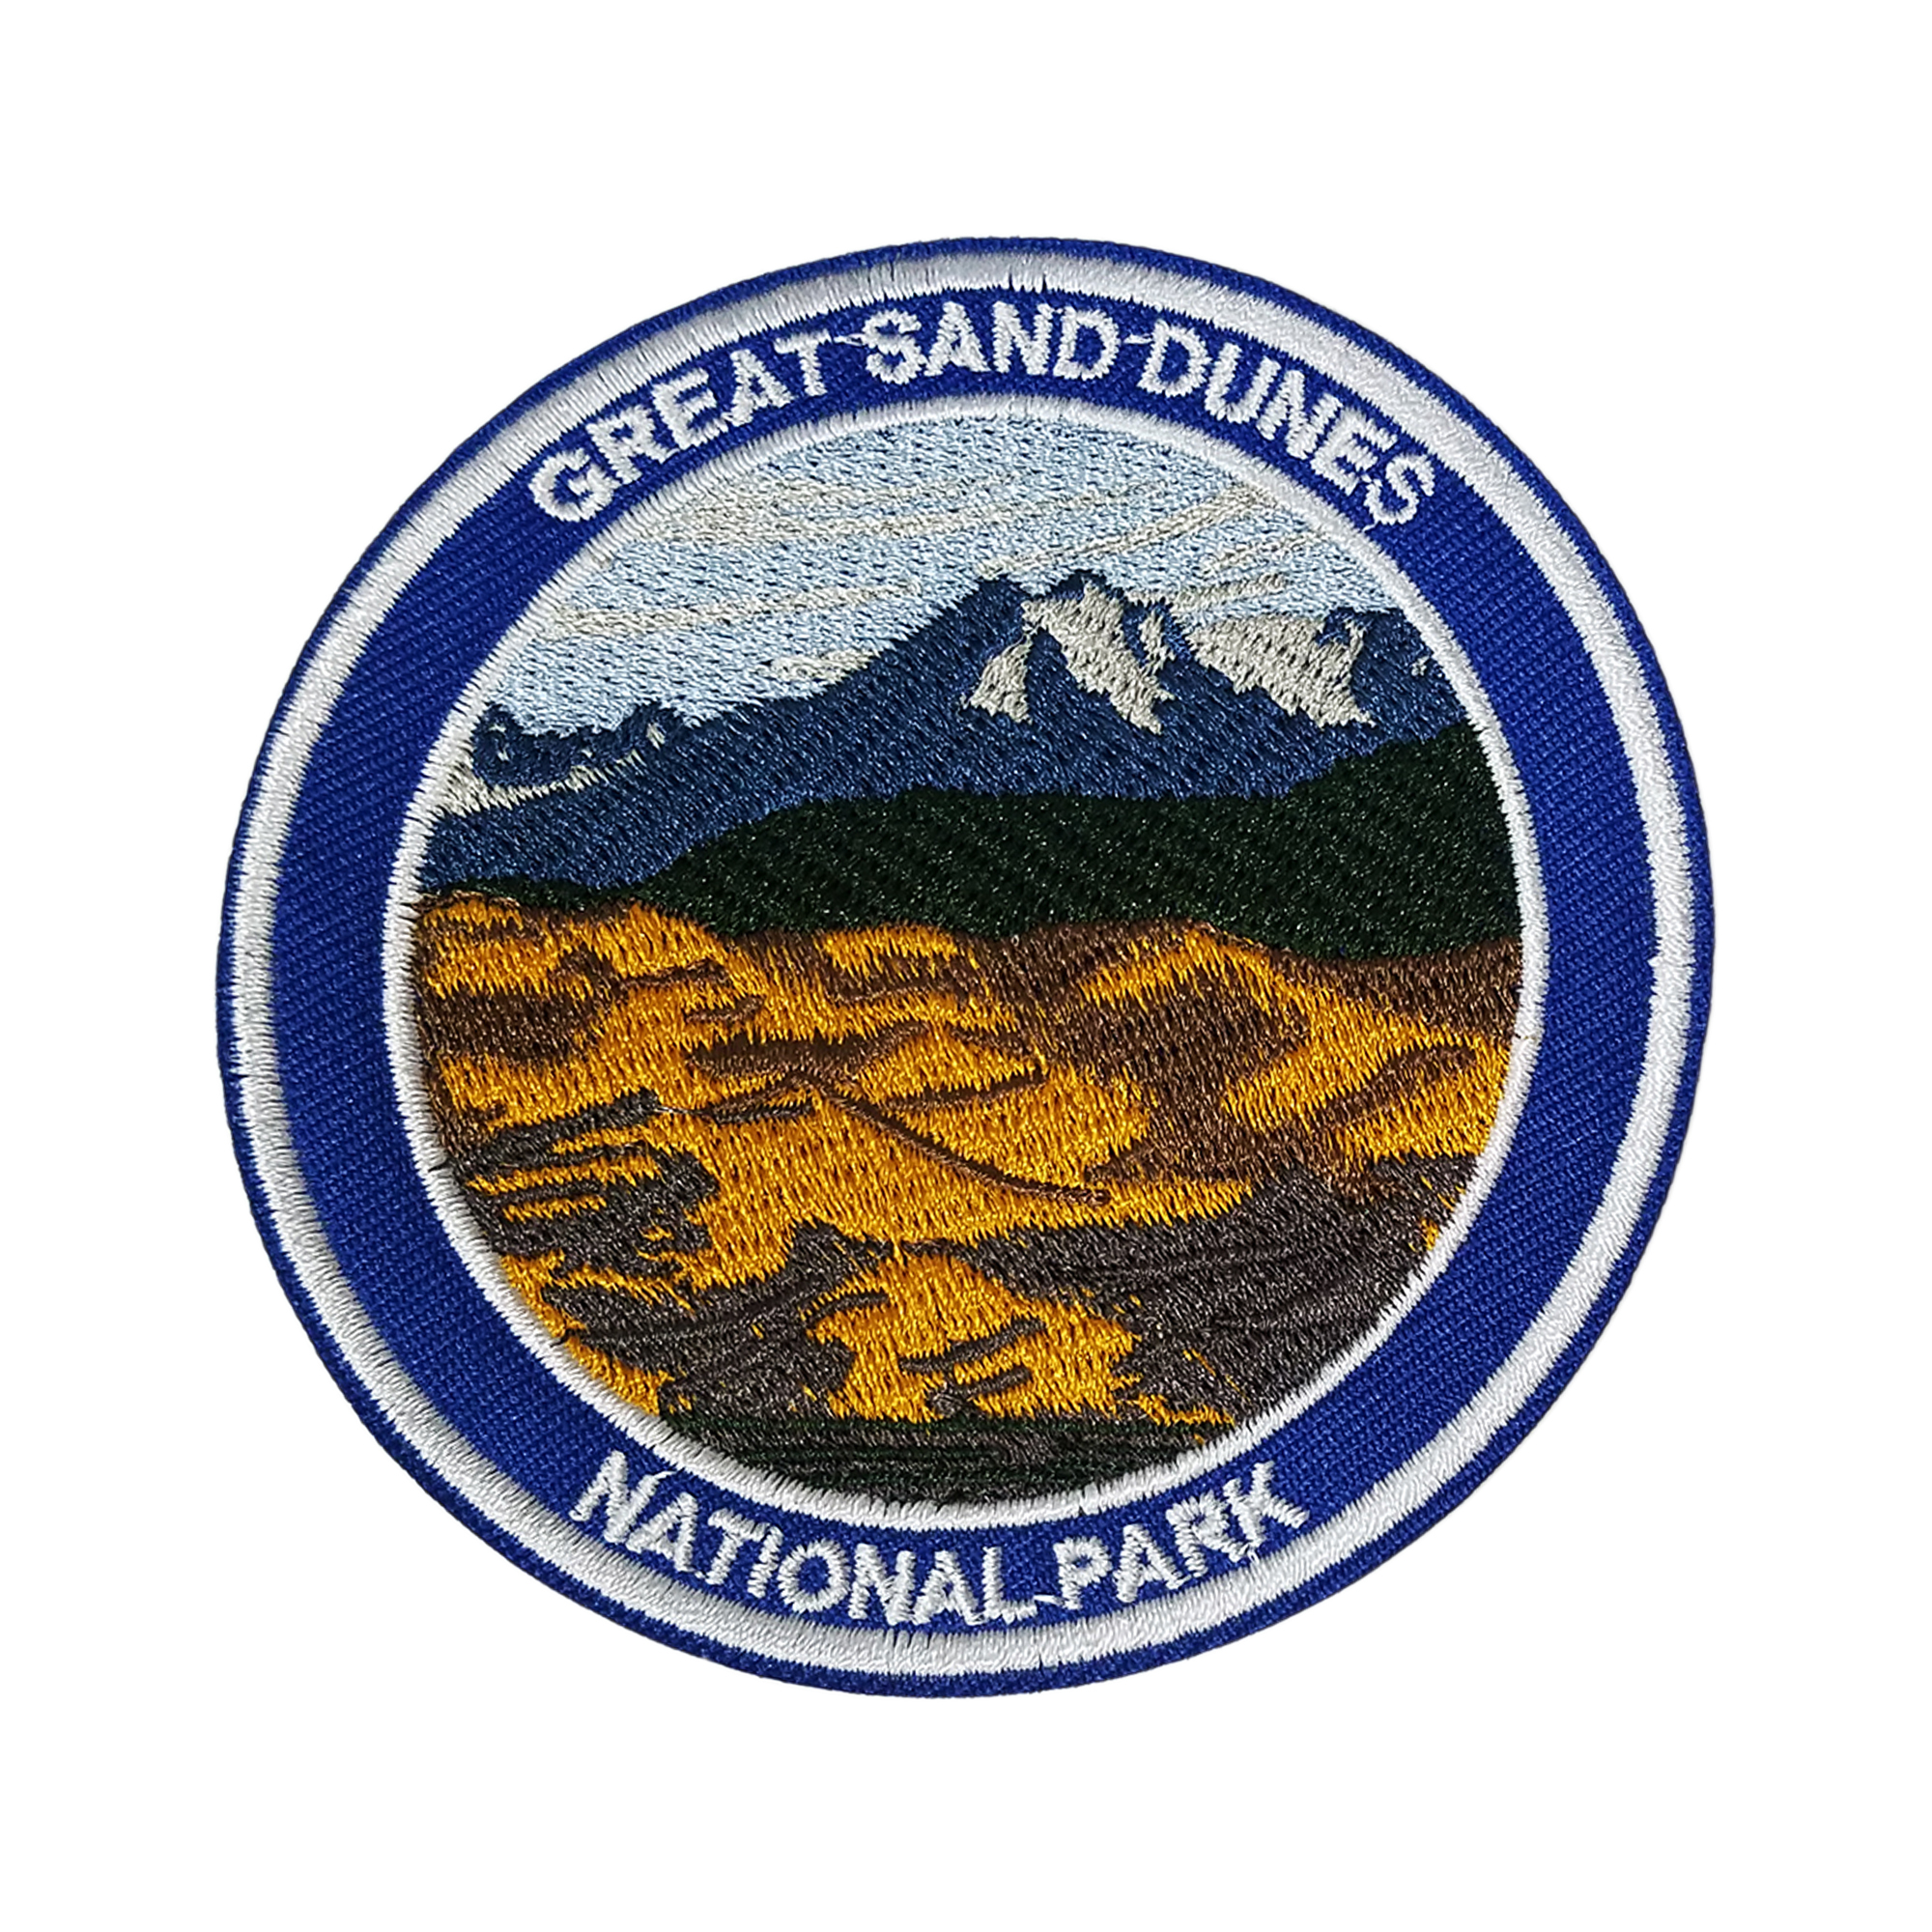 Great Sand Dunes National Park Embroidered Patch Iron//Sew-On Applique Souvenir